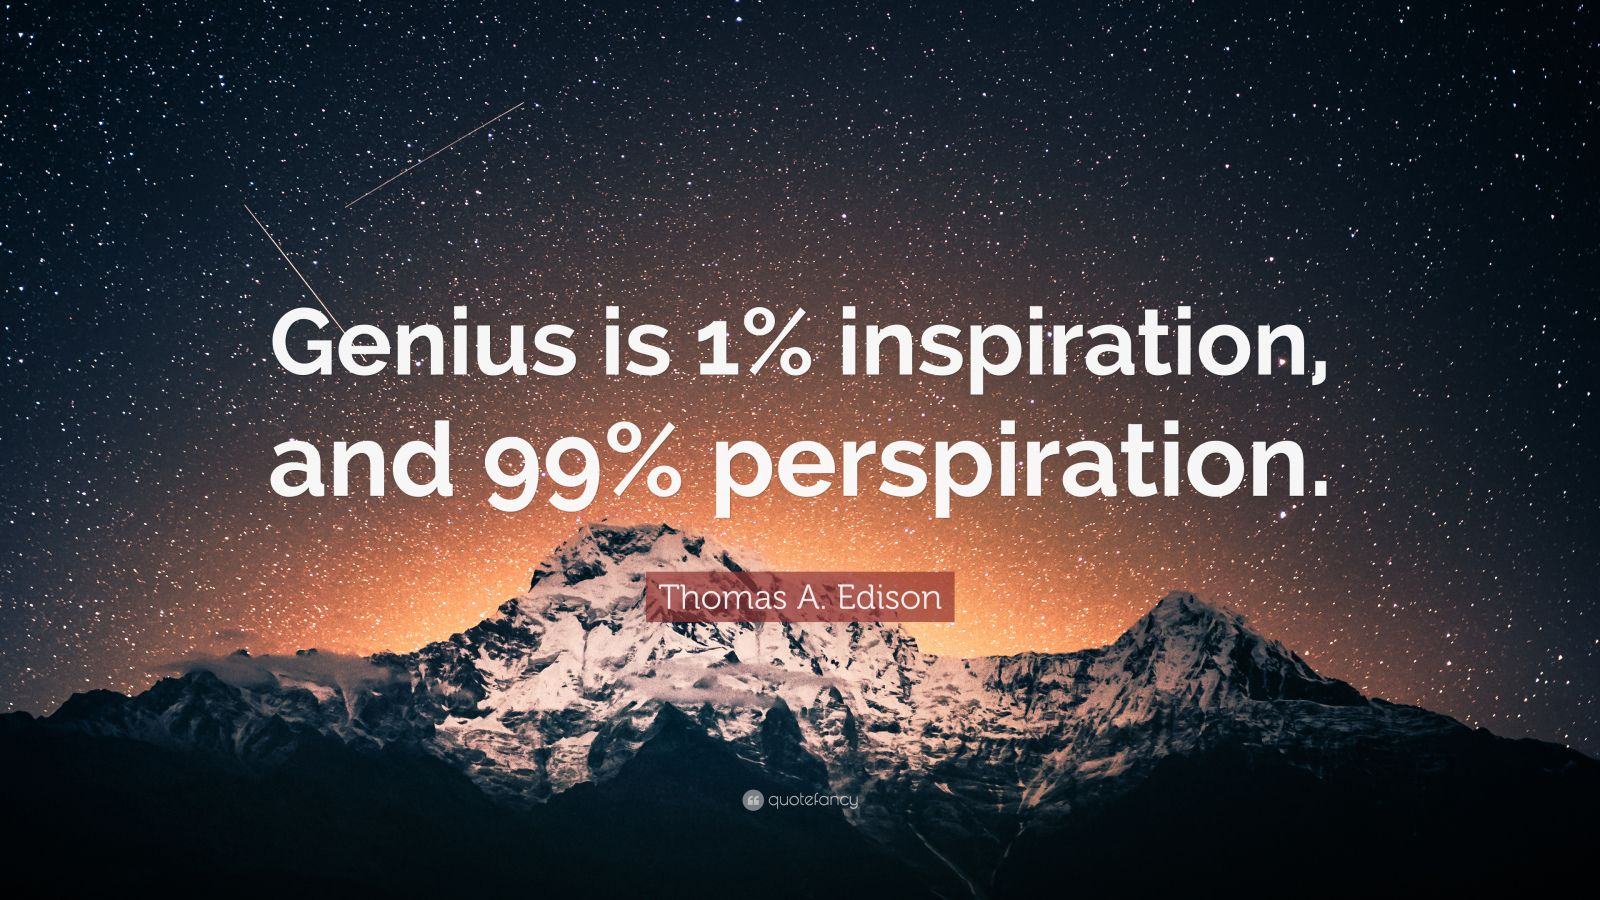 success genius is 99 perspiration and 1 inspiration Genius is one percent inspiration and ninety-nine percent perspiration quote meaning people think that genius gets things easily however, the actual reality is that genius works hard to achieve results.